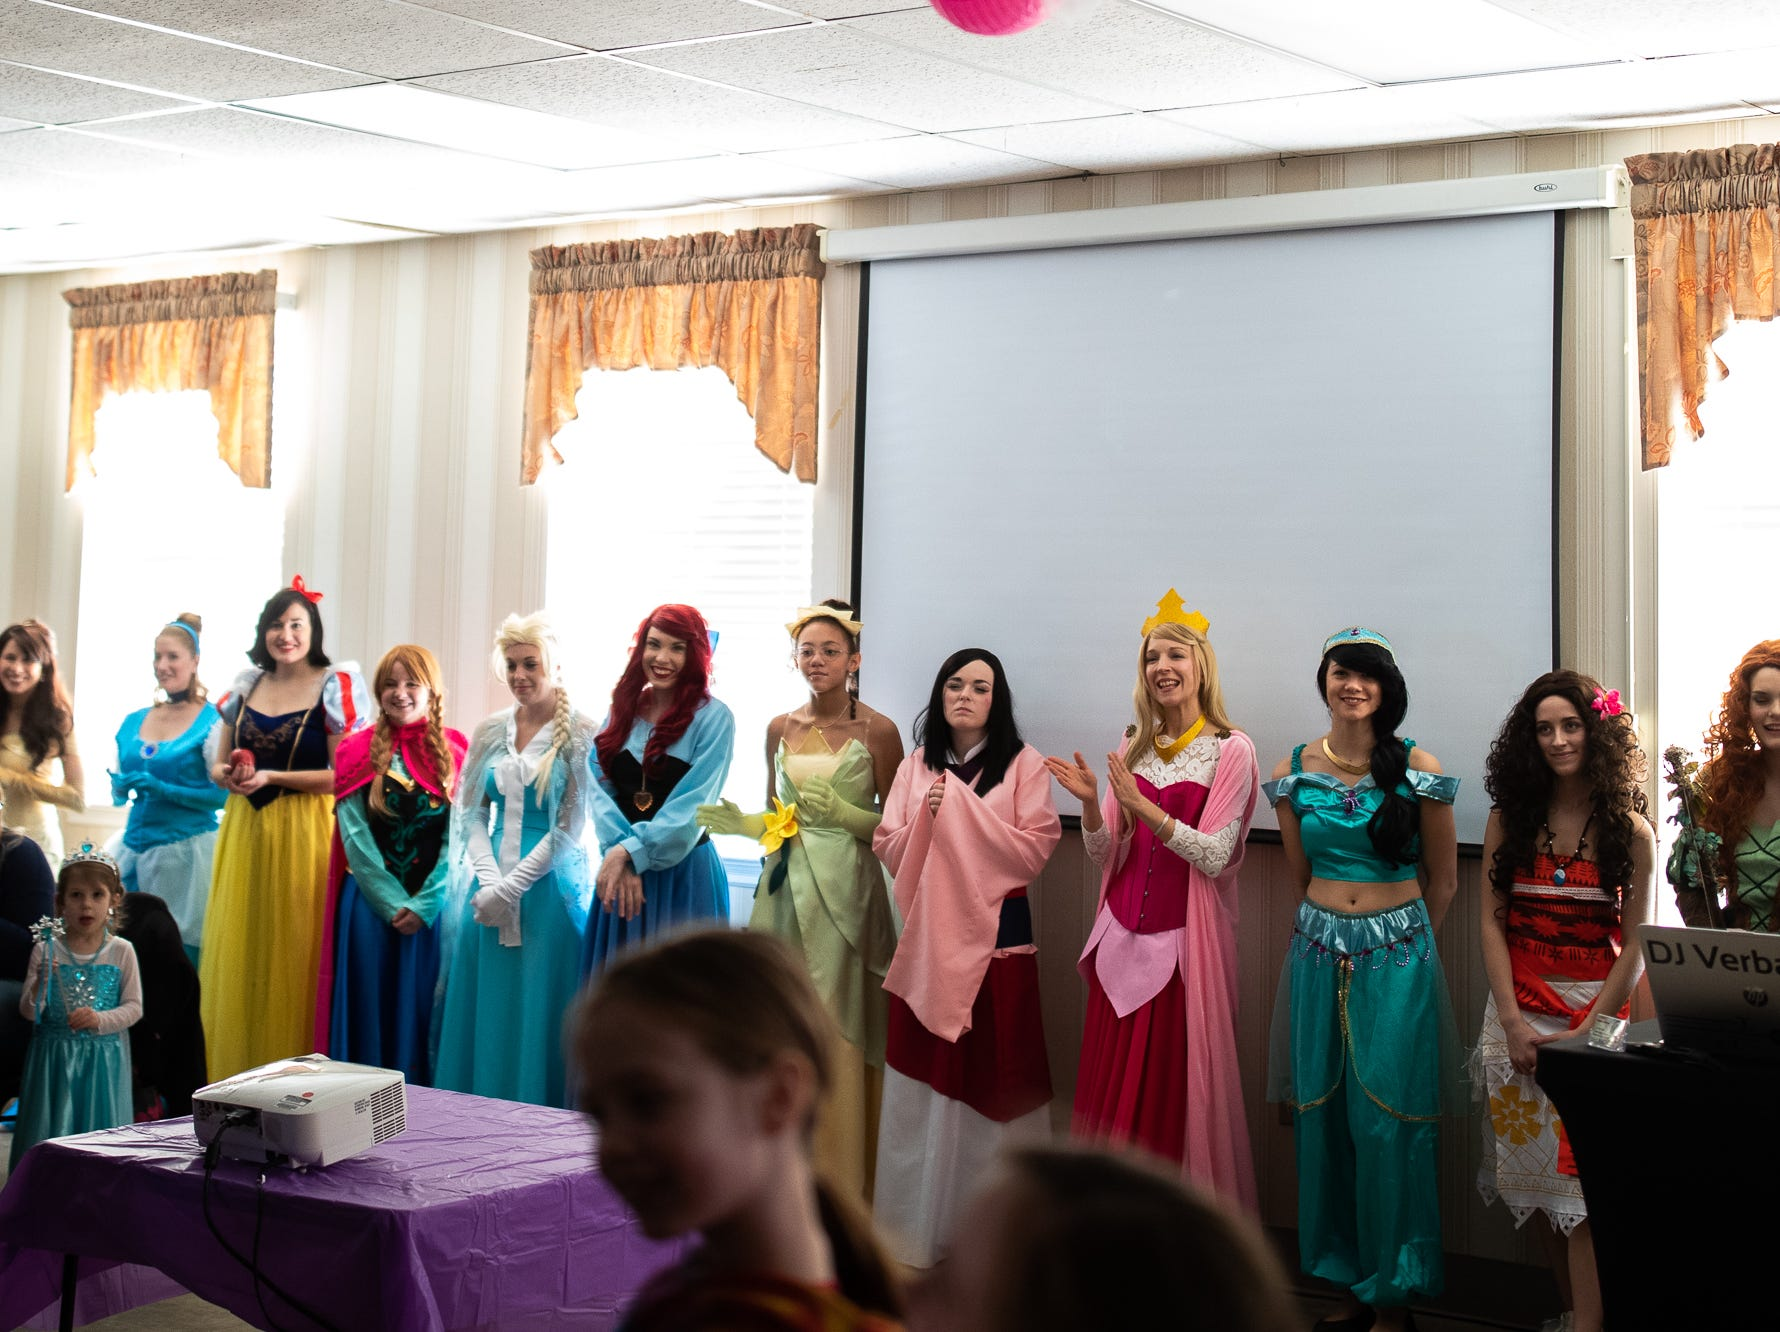 Princesses arrive during a princess teatime hosted by the Black Rose Rollers, Saturday, Feb. 9, 2019, at the Hanover YWCA.